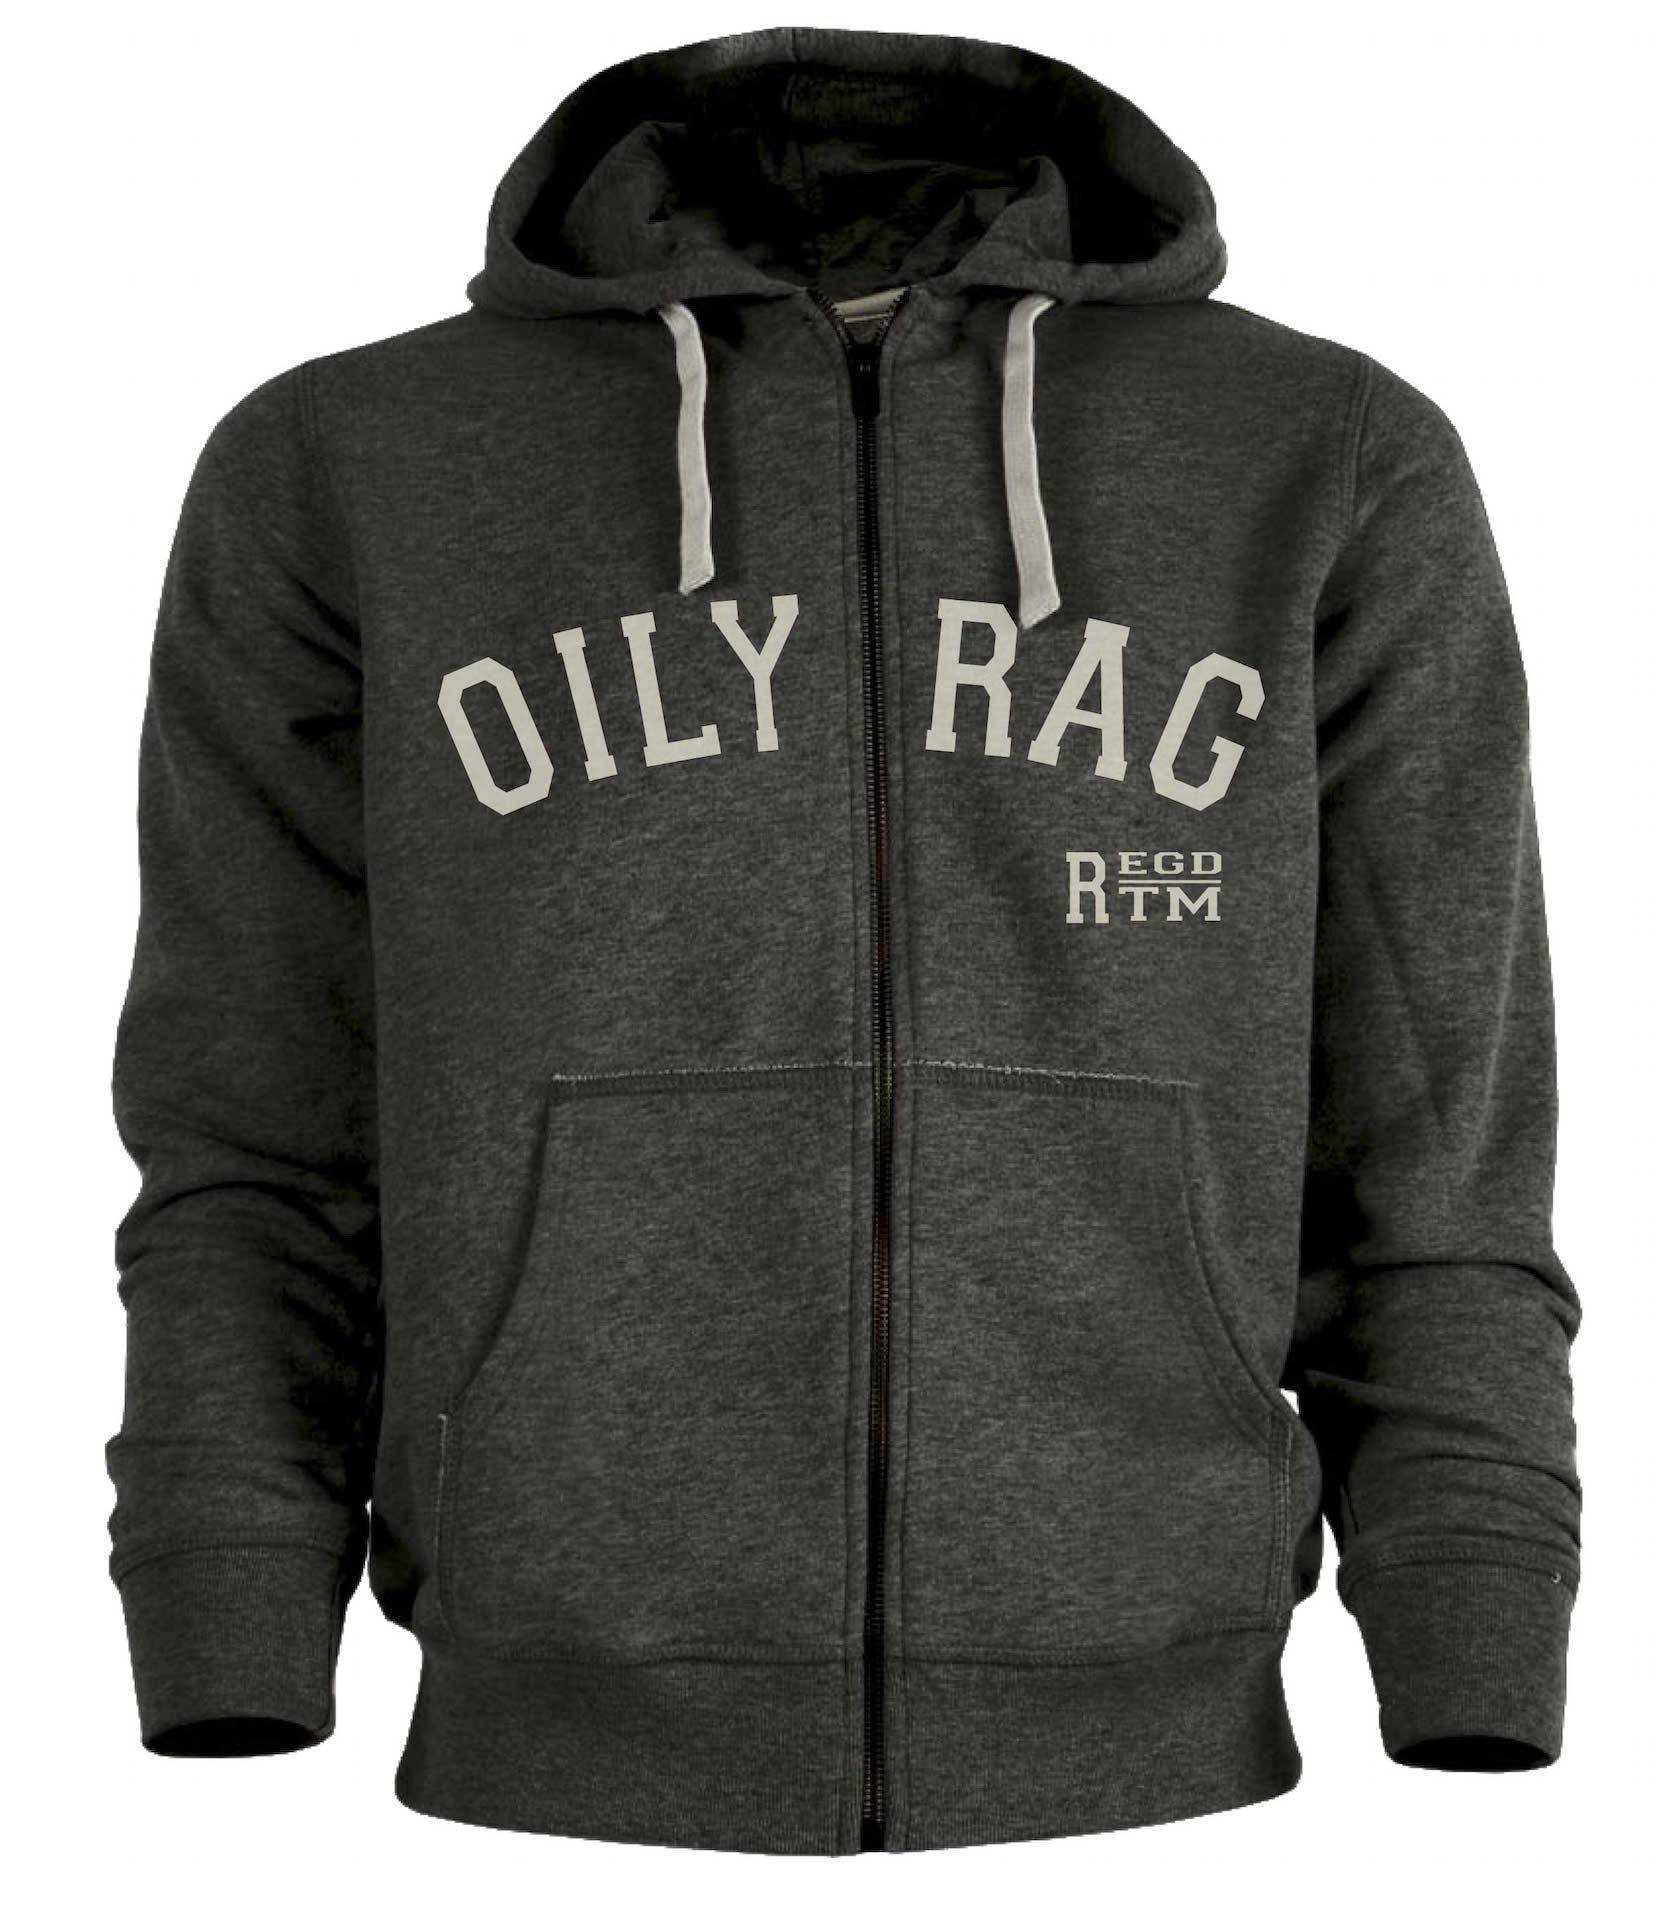 Oily Rag Clothing - Oily Rag Clothing Mens Trademark Zipped Hoodie - Hoodies | Sweatshirts | Wind Stoppers - Salt Flats Clothing